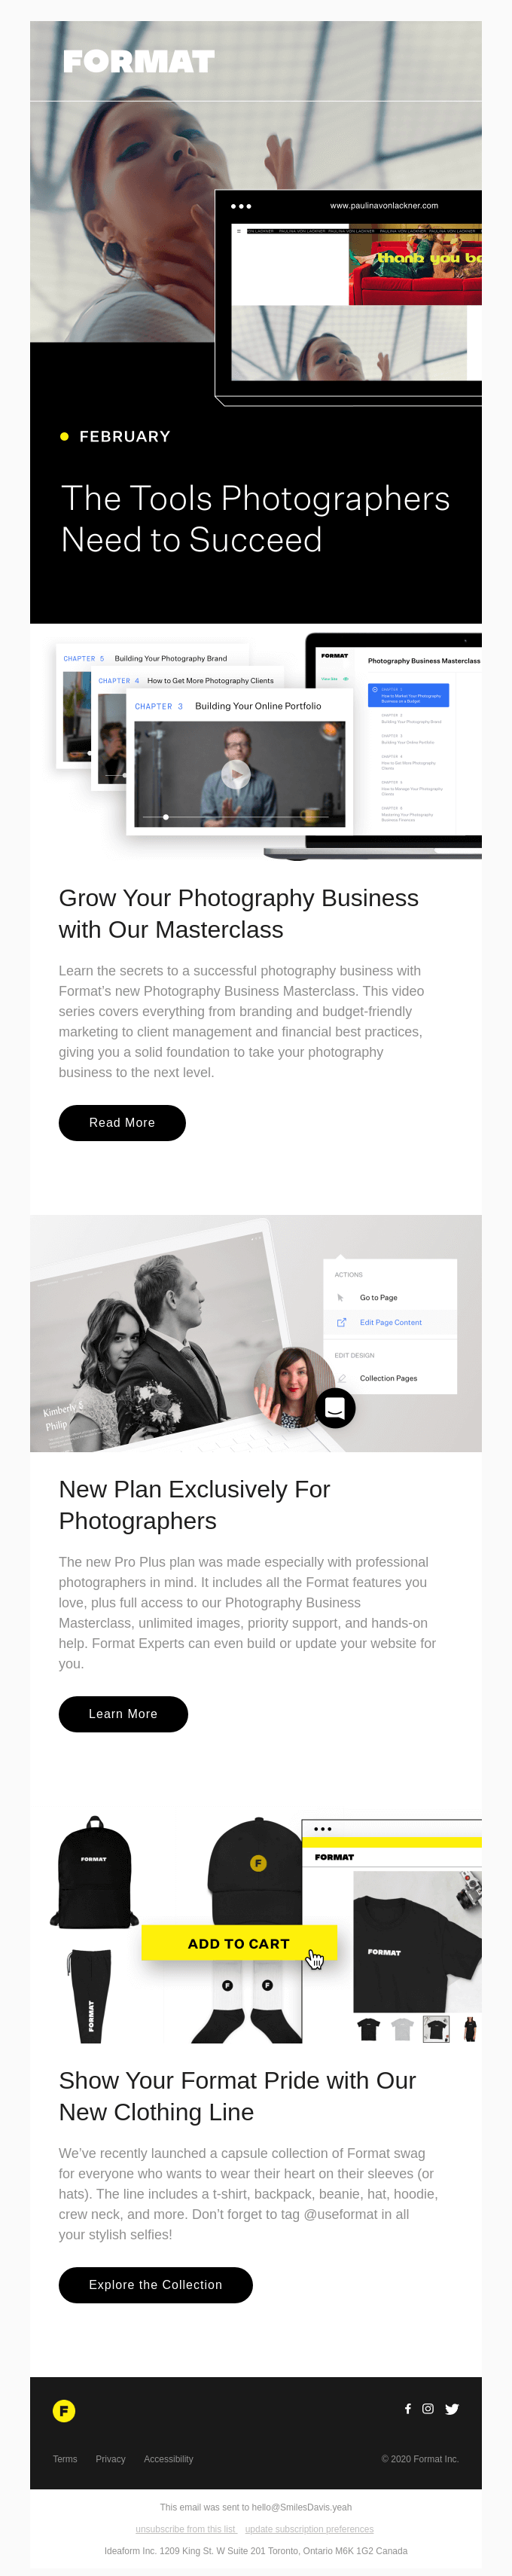 Grow Your Photography Business with Format